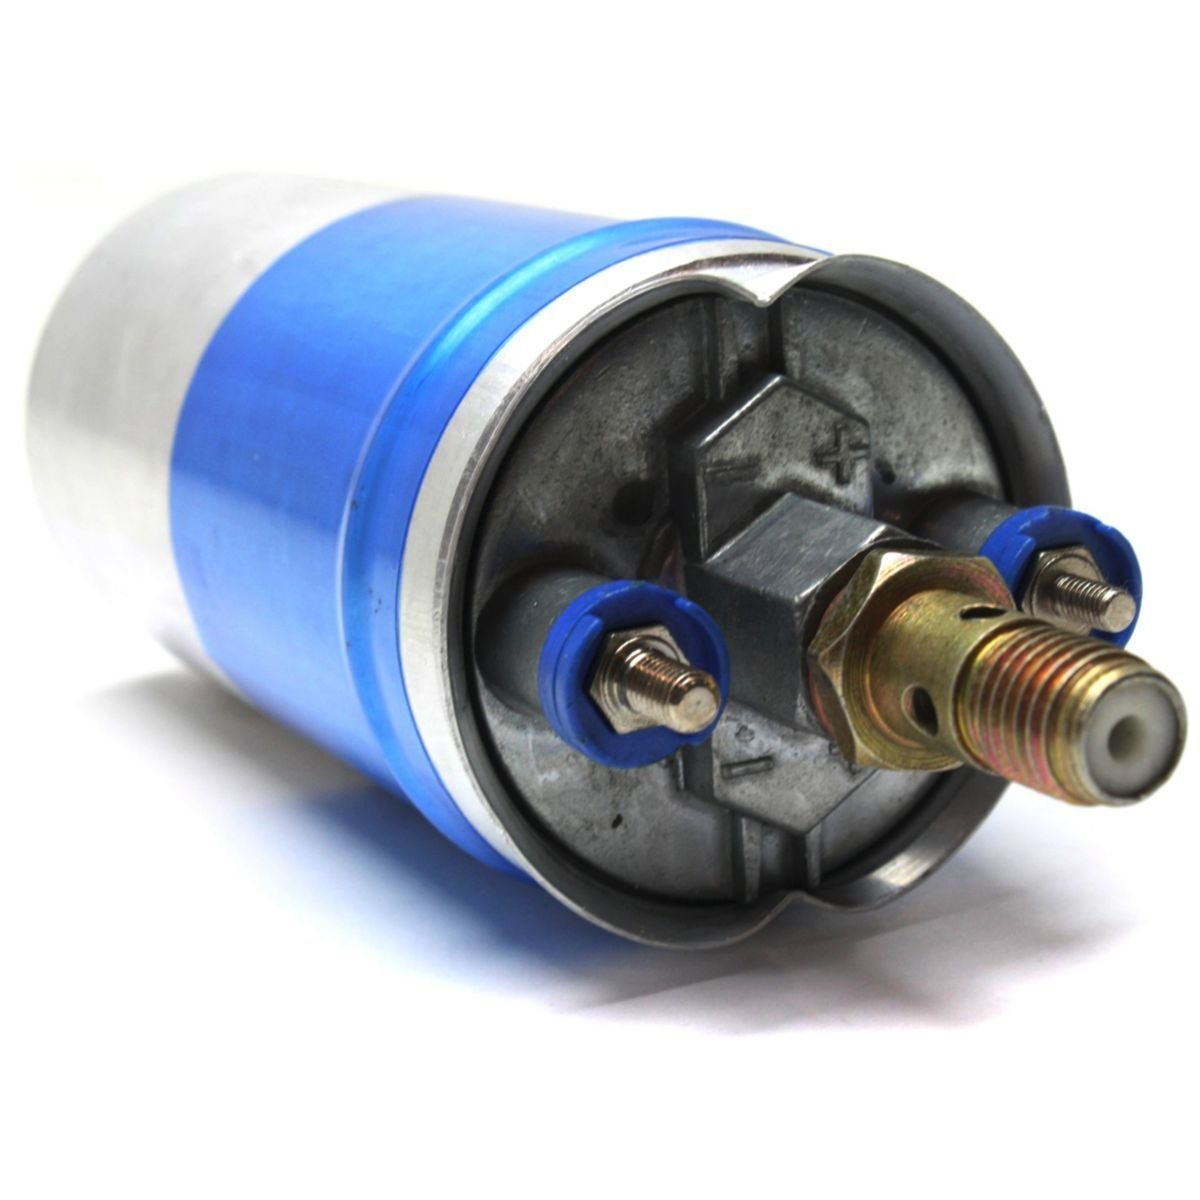 Amazon.com: Diften 323-A0791-X01 - New Electric Fuel Pump Gas Mercedes 280  190 Mercedes-Benz 300E 190E 450SL 380SL: Automotive